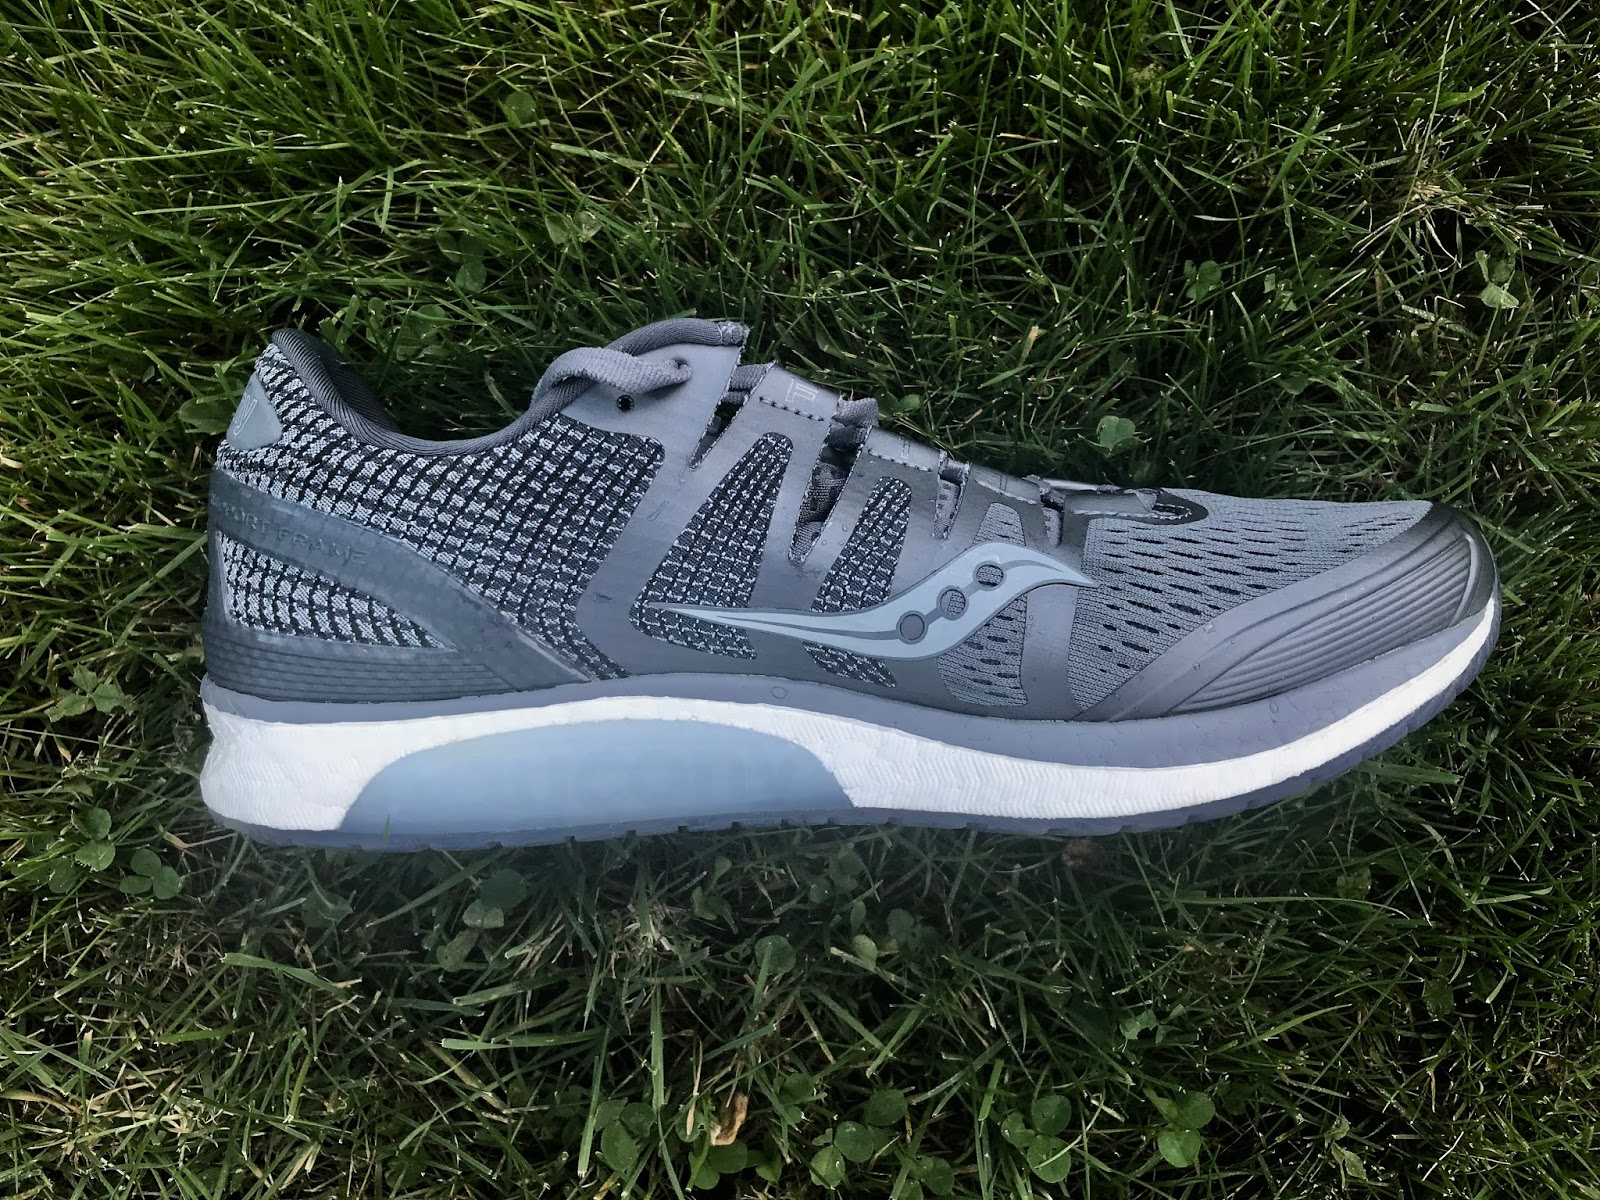 Road Trail Run: Saucony Liberty ISO Review: Bouncy, Soft Fun